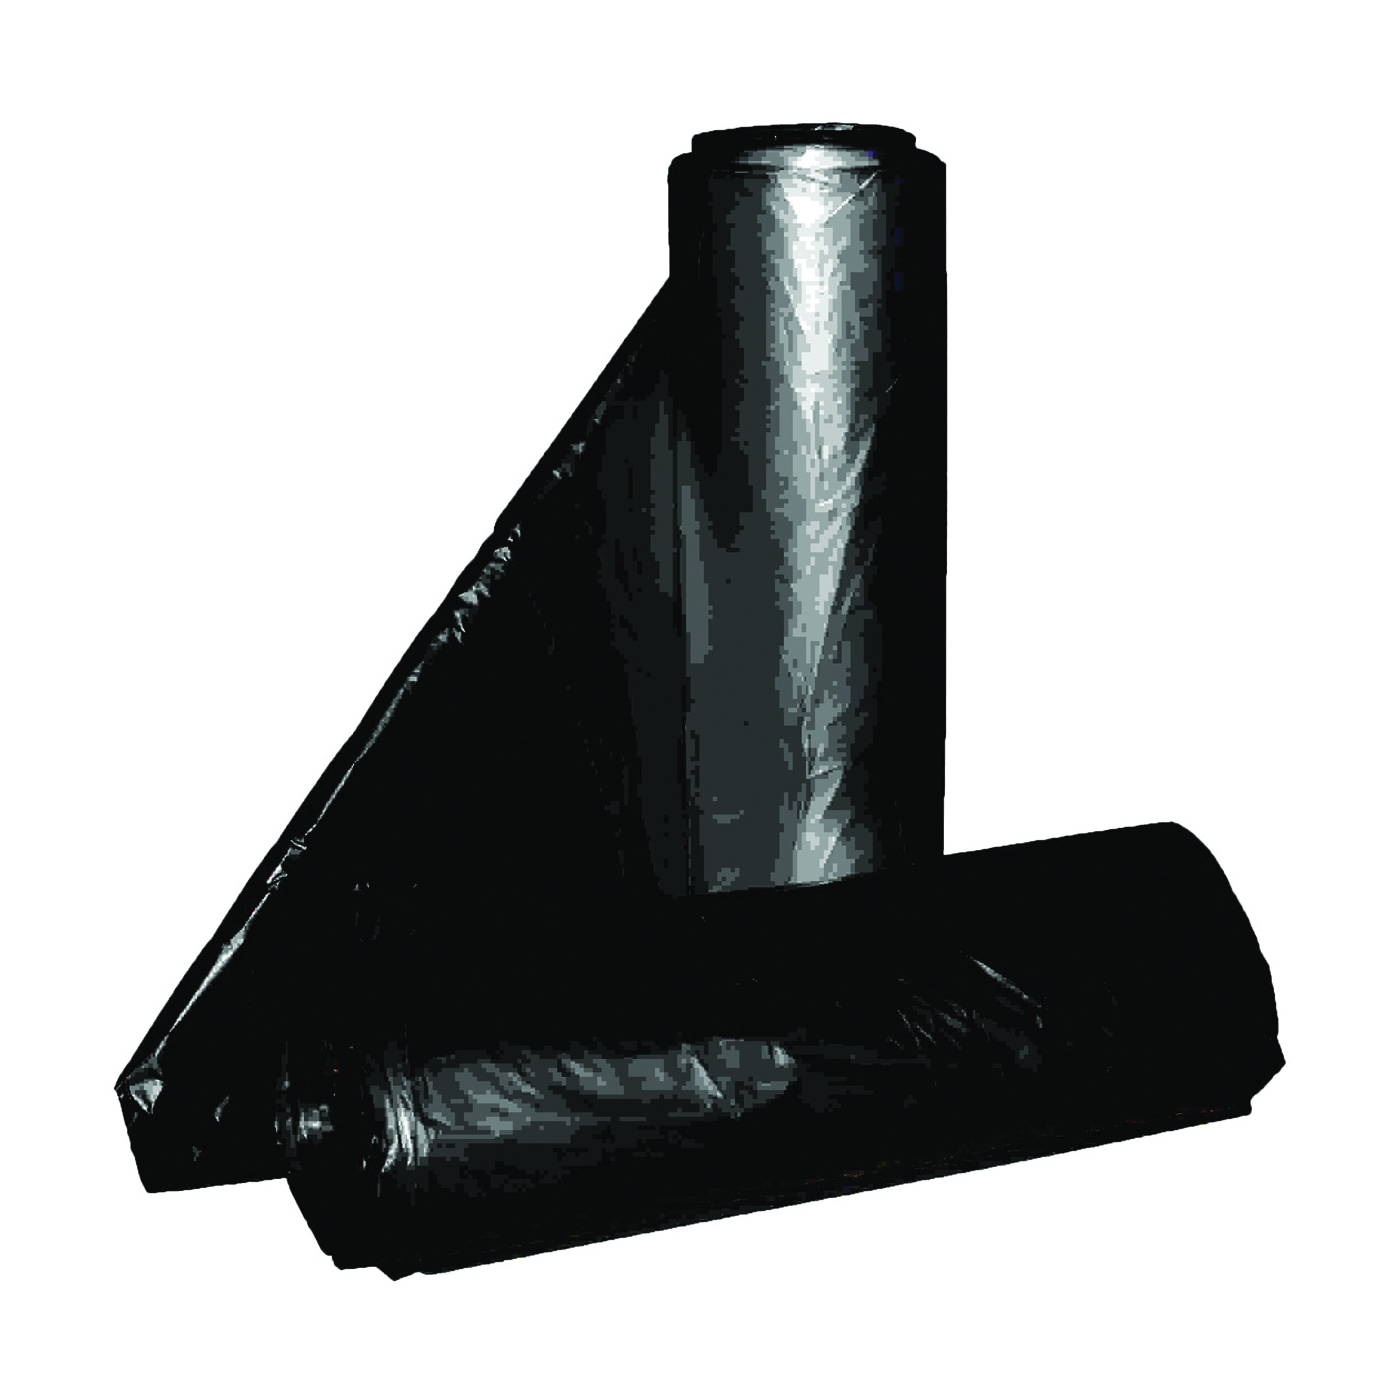 Picture of ALUF PLASTICS RL Series RL-3339XH Can Liner, 33 gal Capacity, Repro Blend, Black